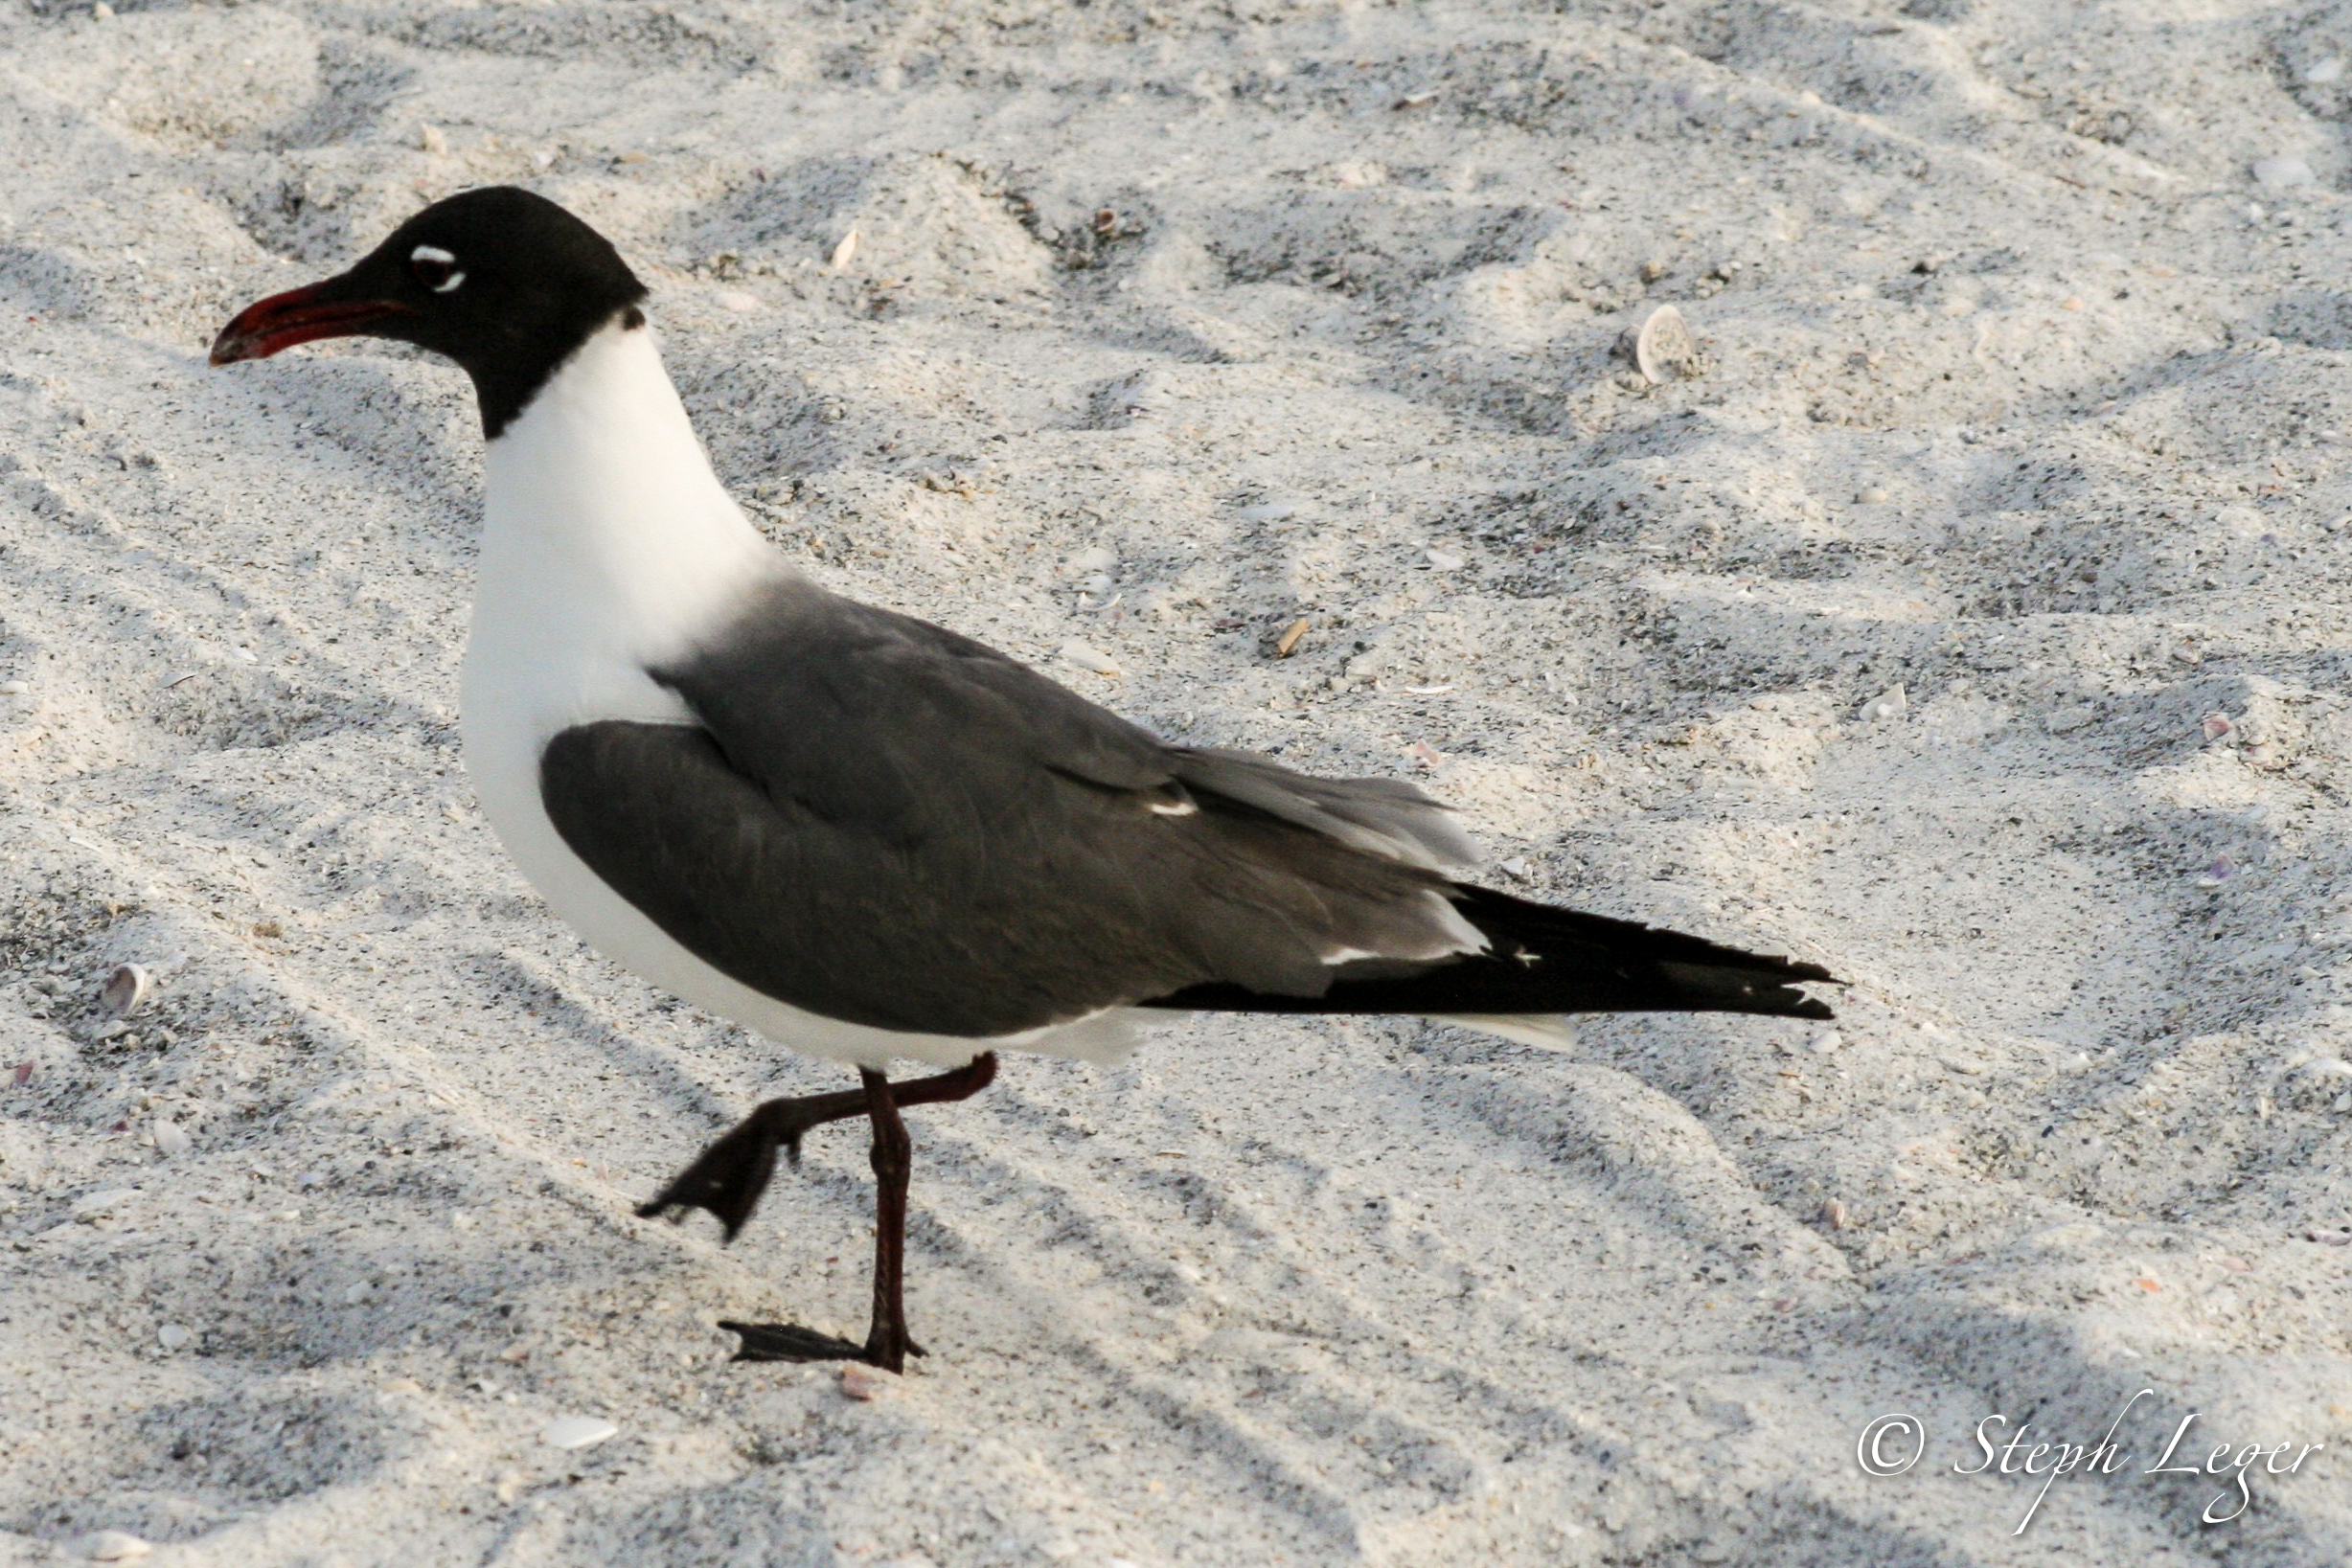 Laughing Gull ( Larus atricilla ) - St. Pete Beach, FL